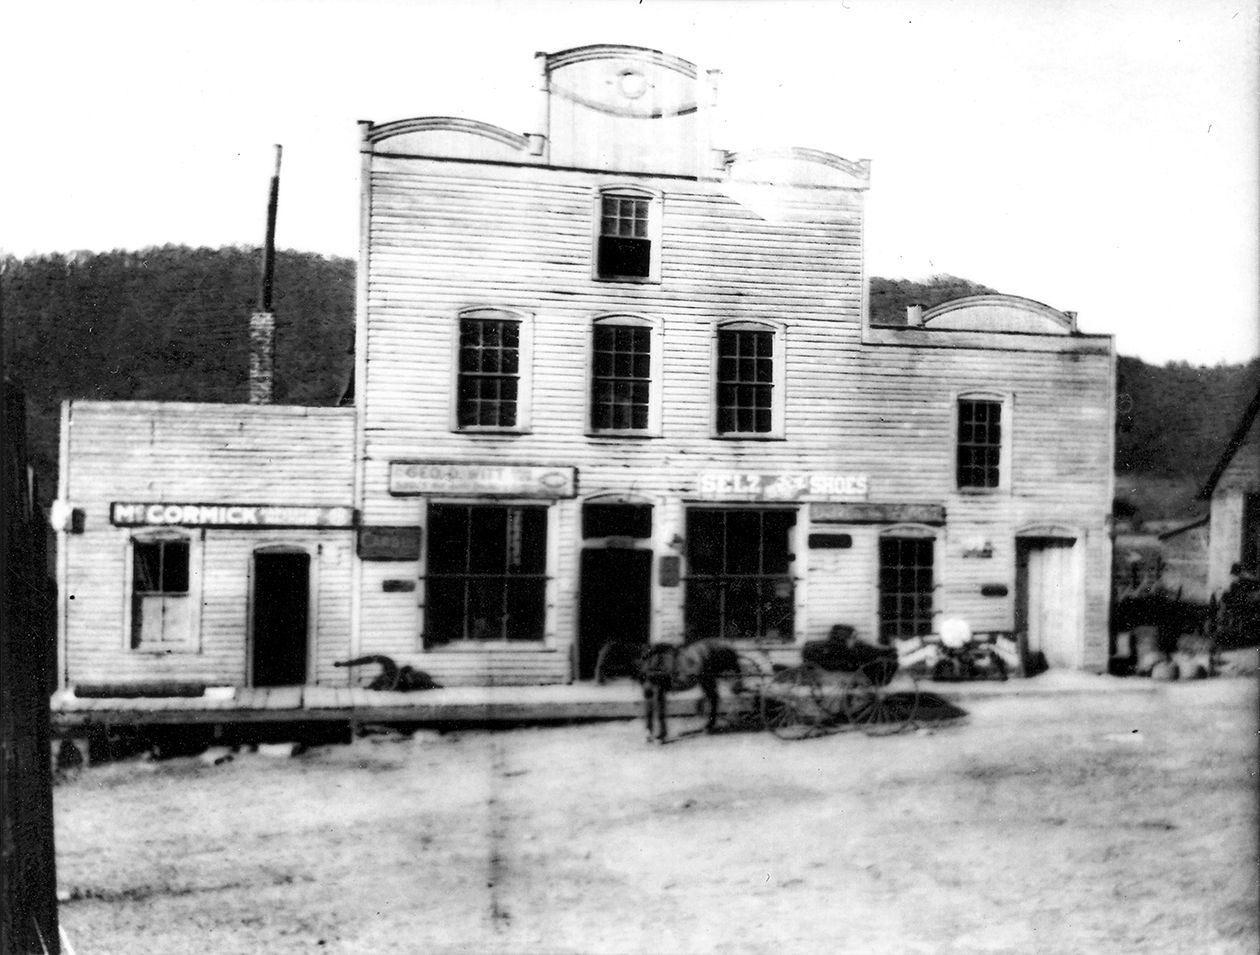 The original Mast General Store. Image from the Mast General Store.